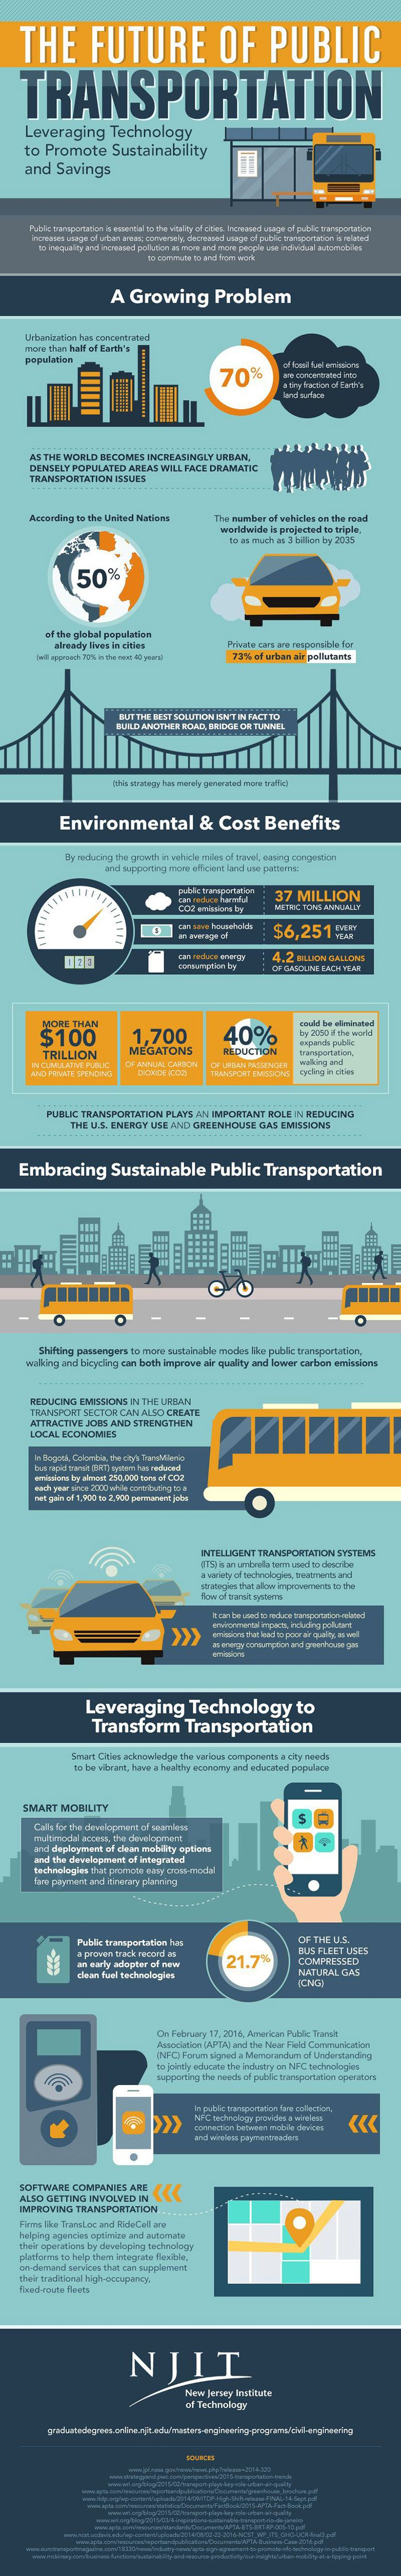 Future Transportation infographic